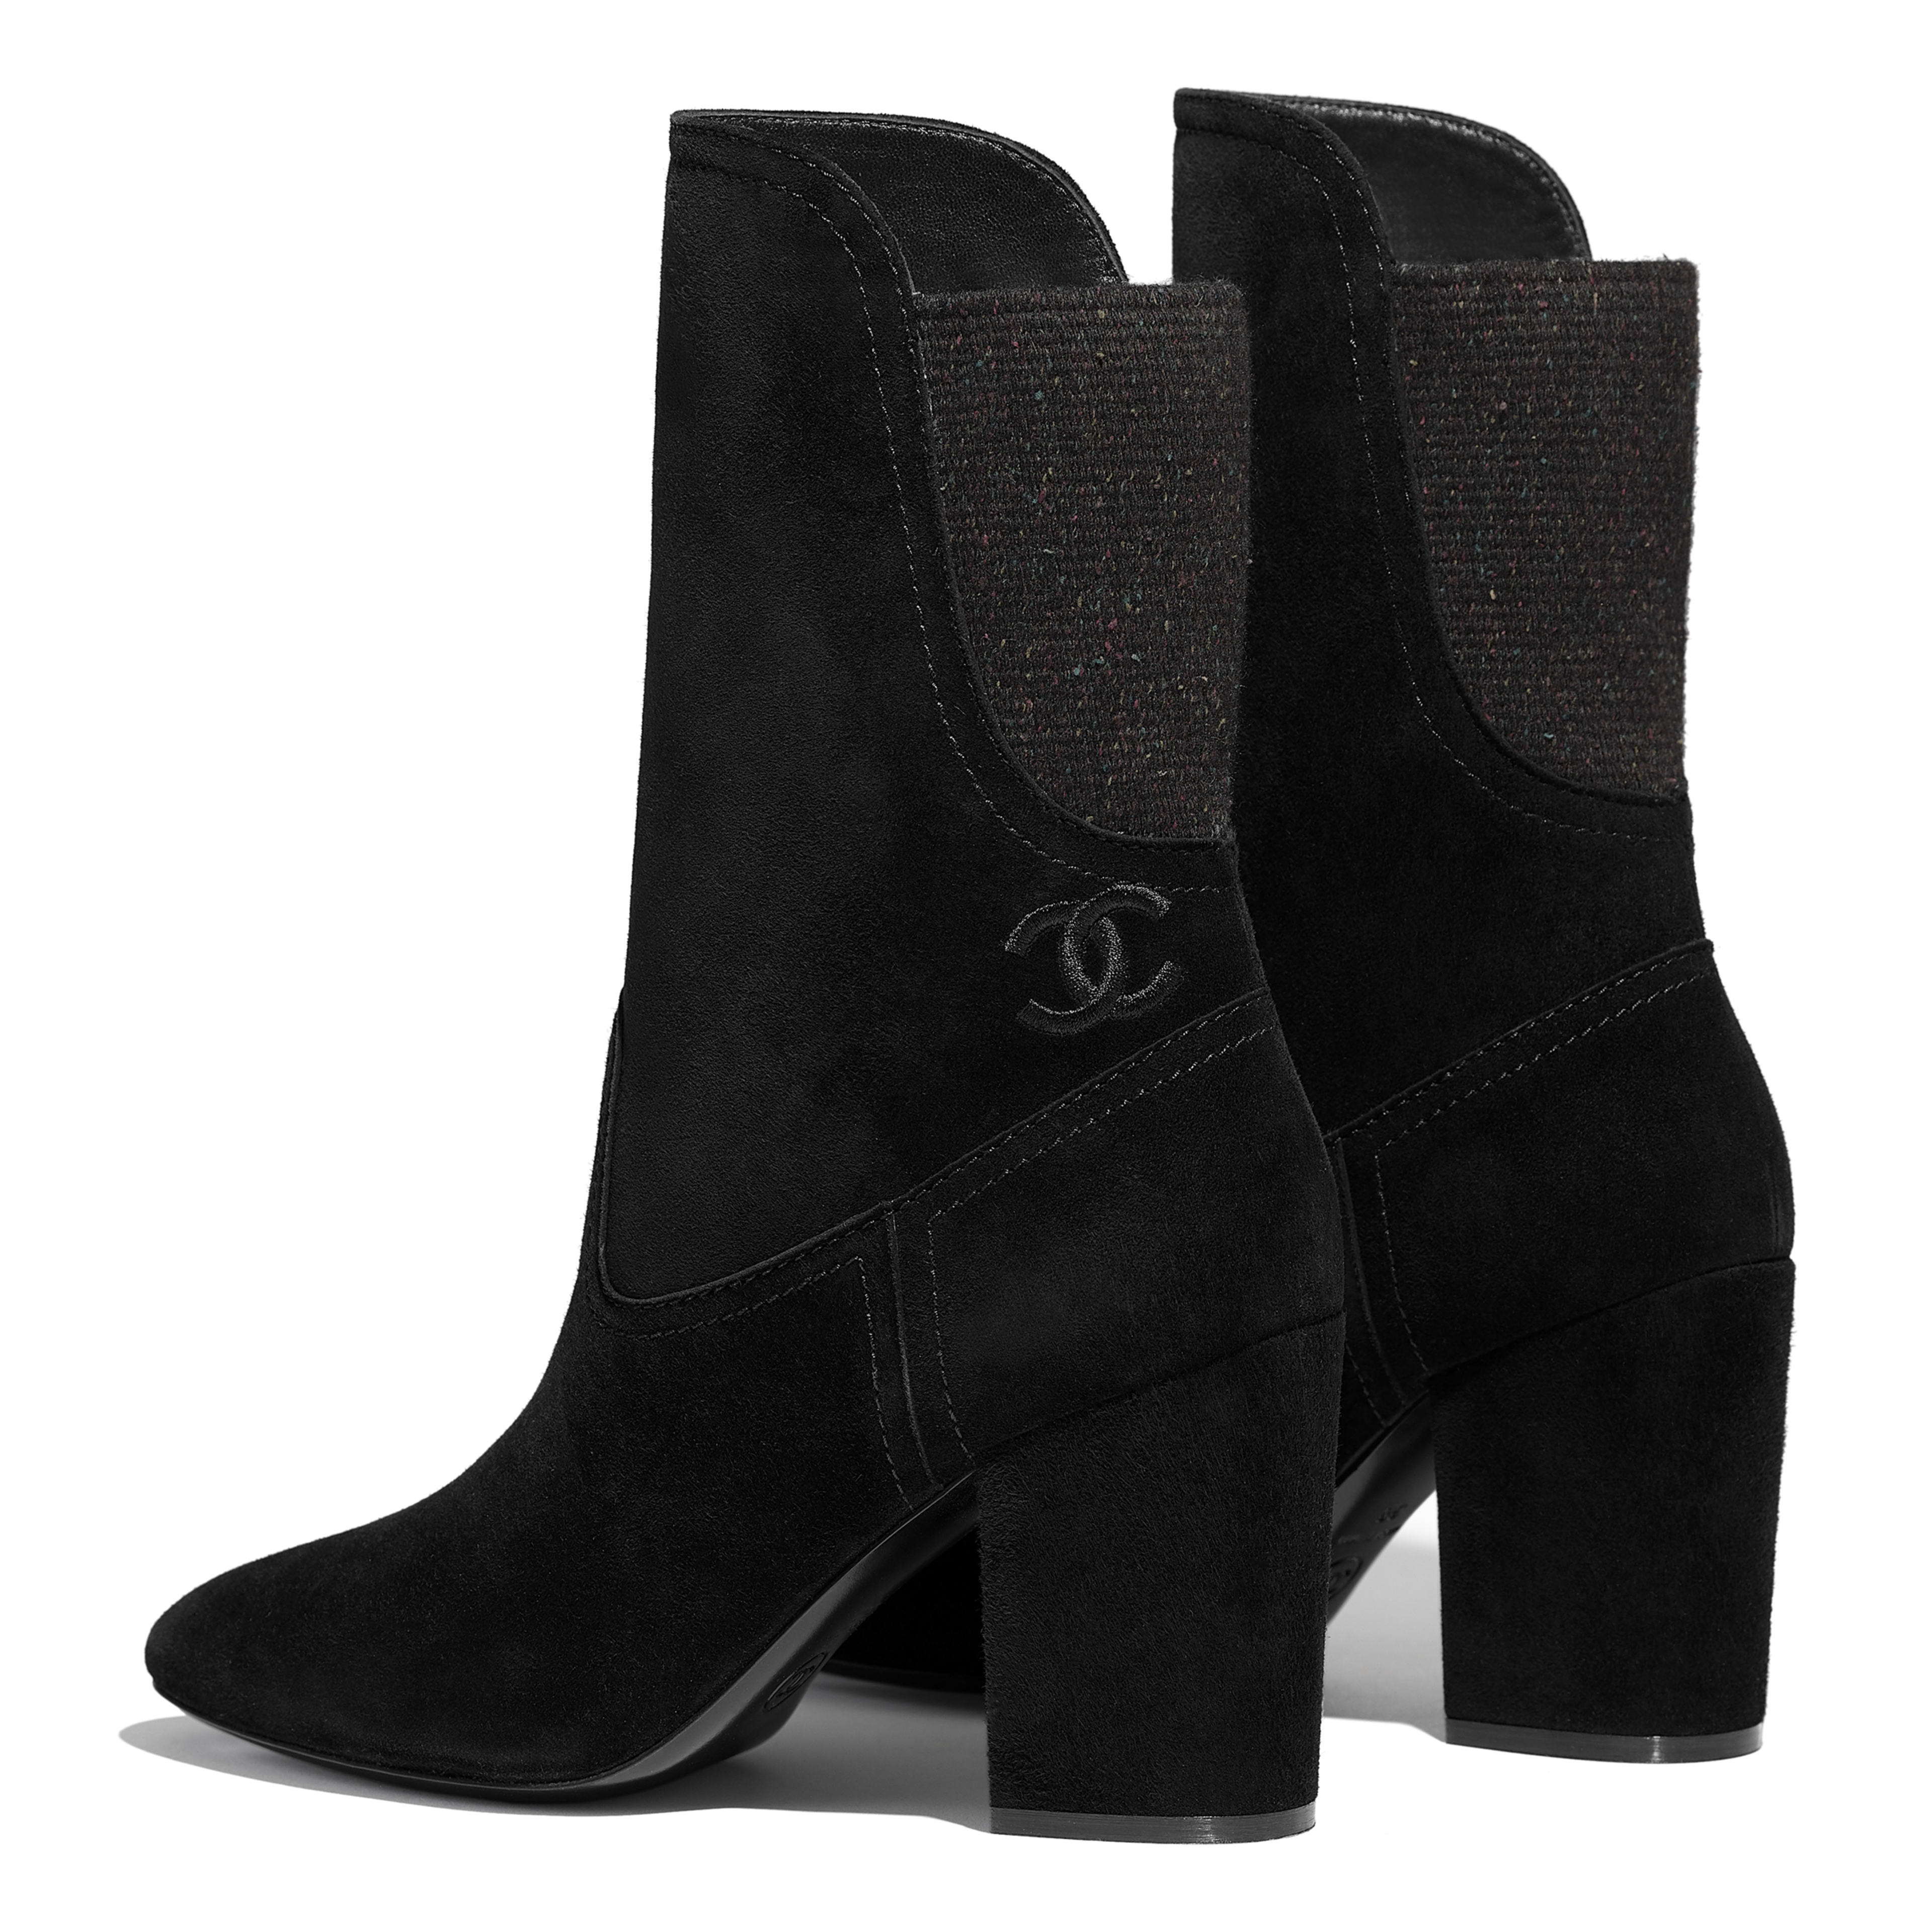 Ankle Boots - Black - Velvet Calfskin & Mixed Fibers - Other view - see full sized version